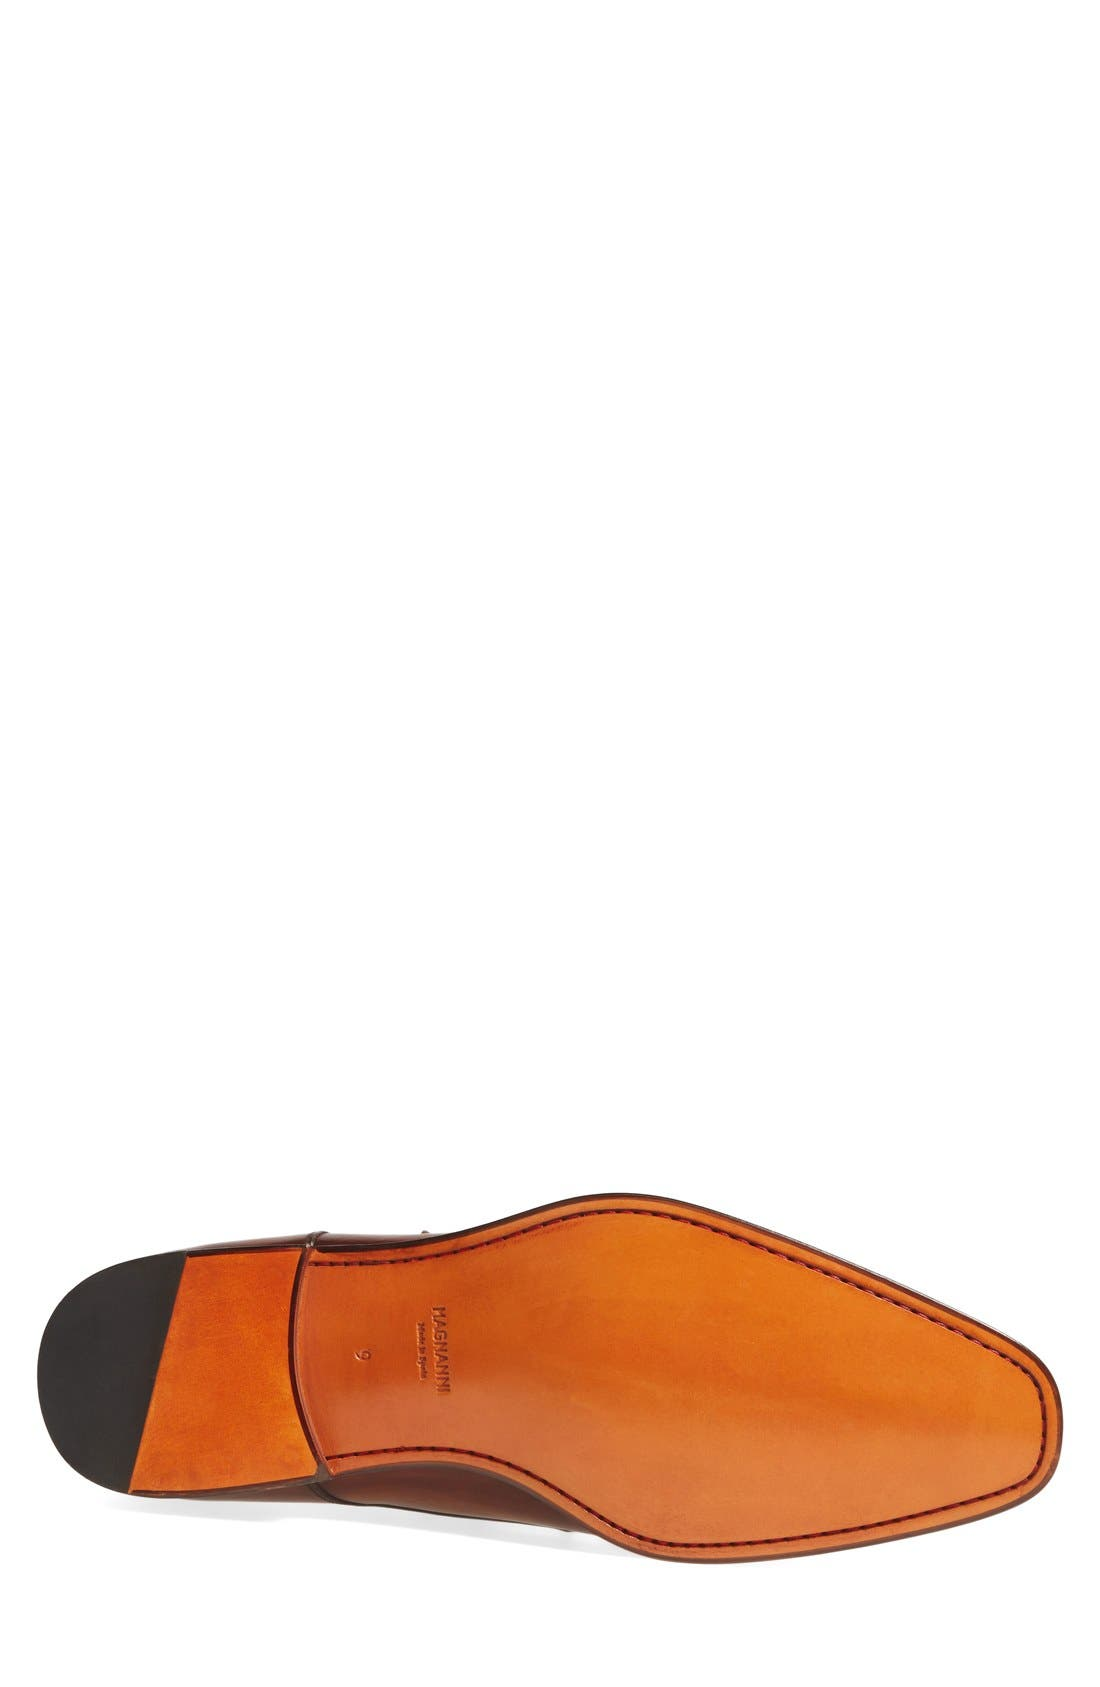 Marco Monk Strap Loafer,                             Alternate thumbnail 4, color,                             Cuero Brown Leather